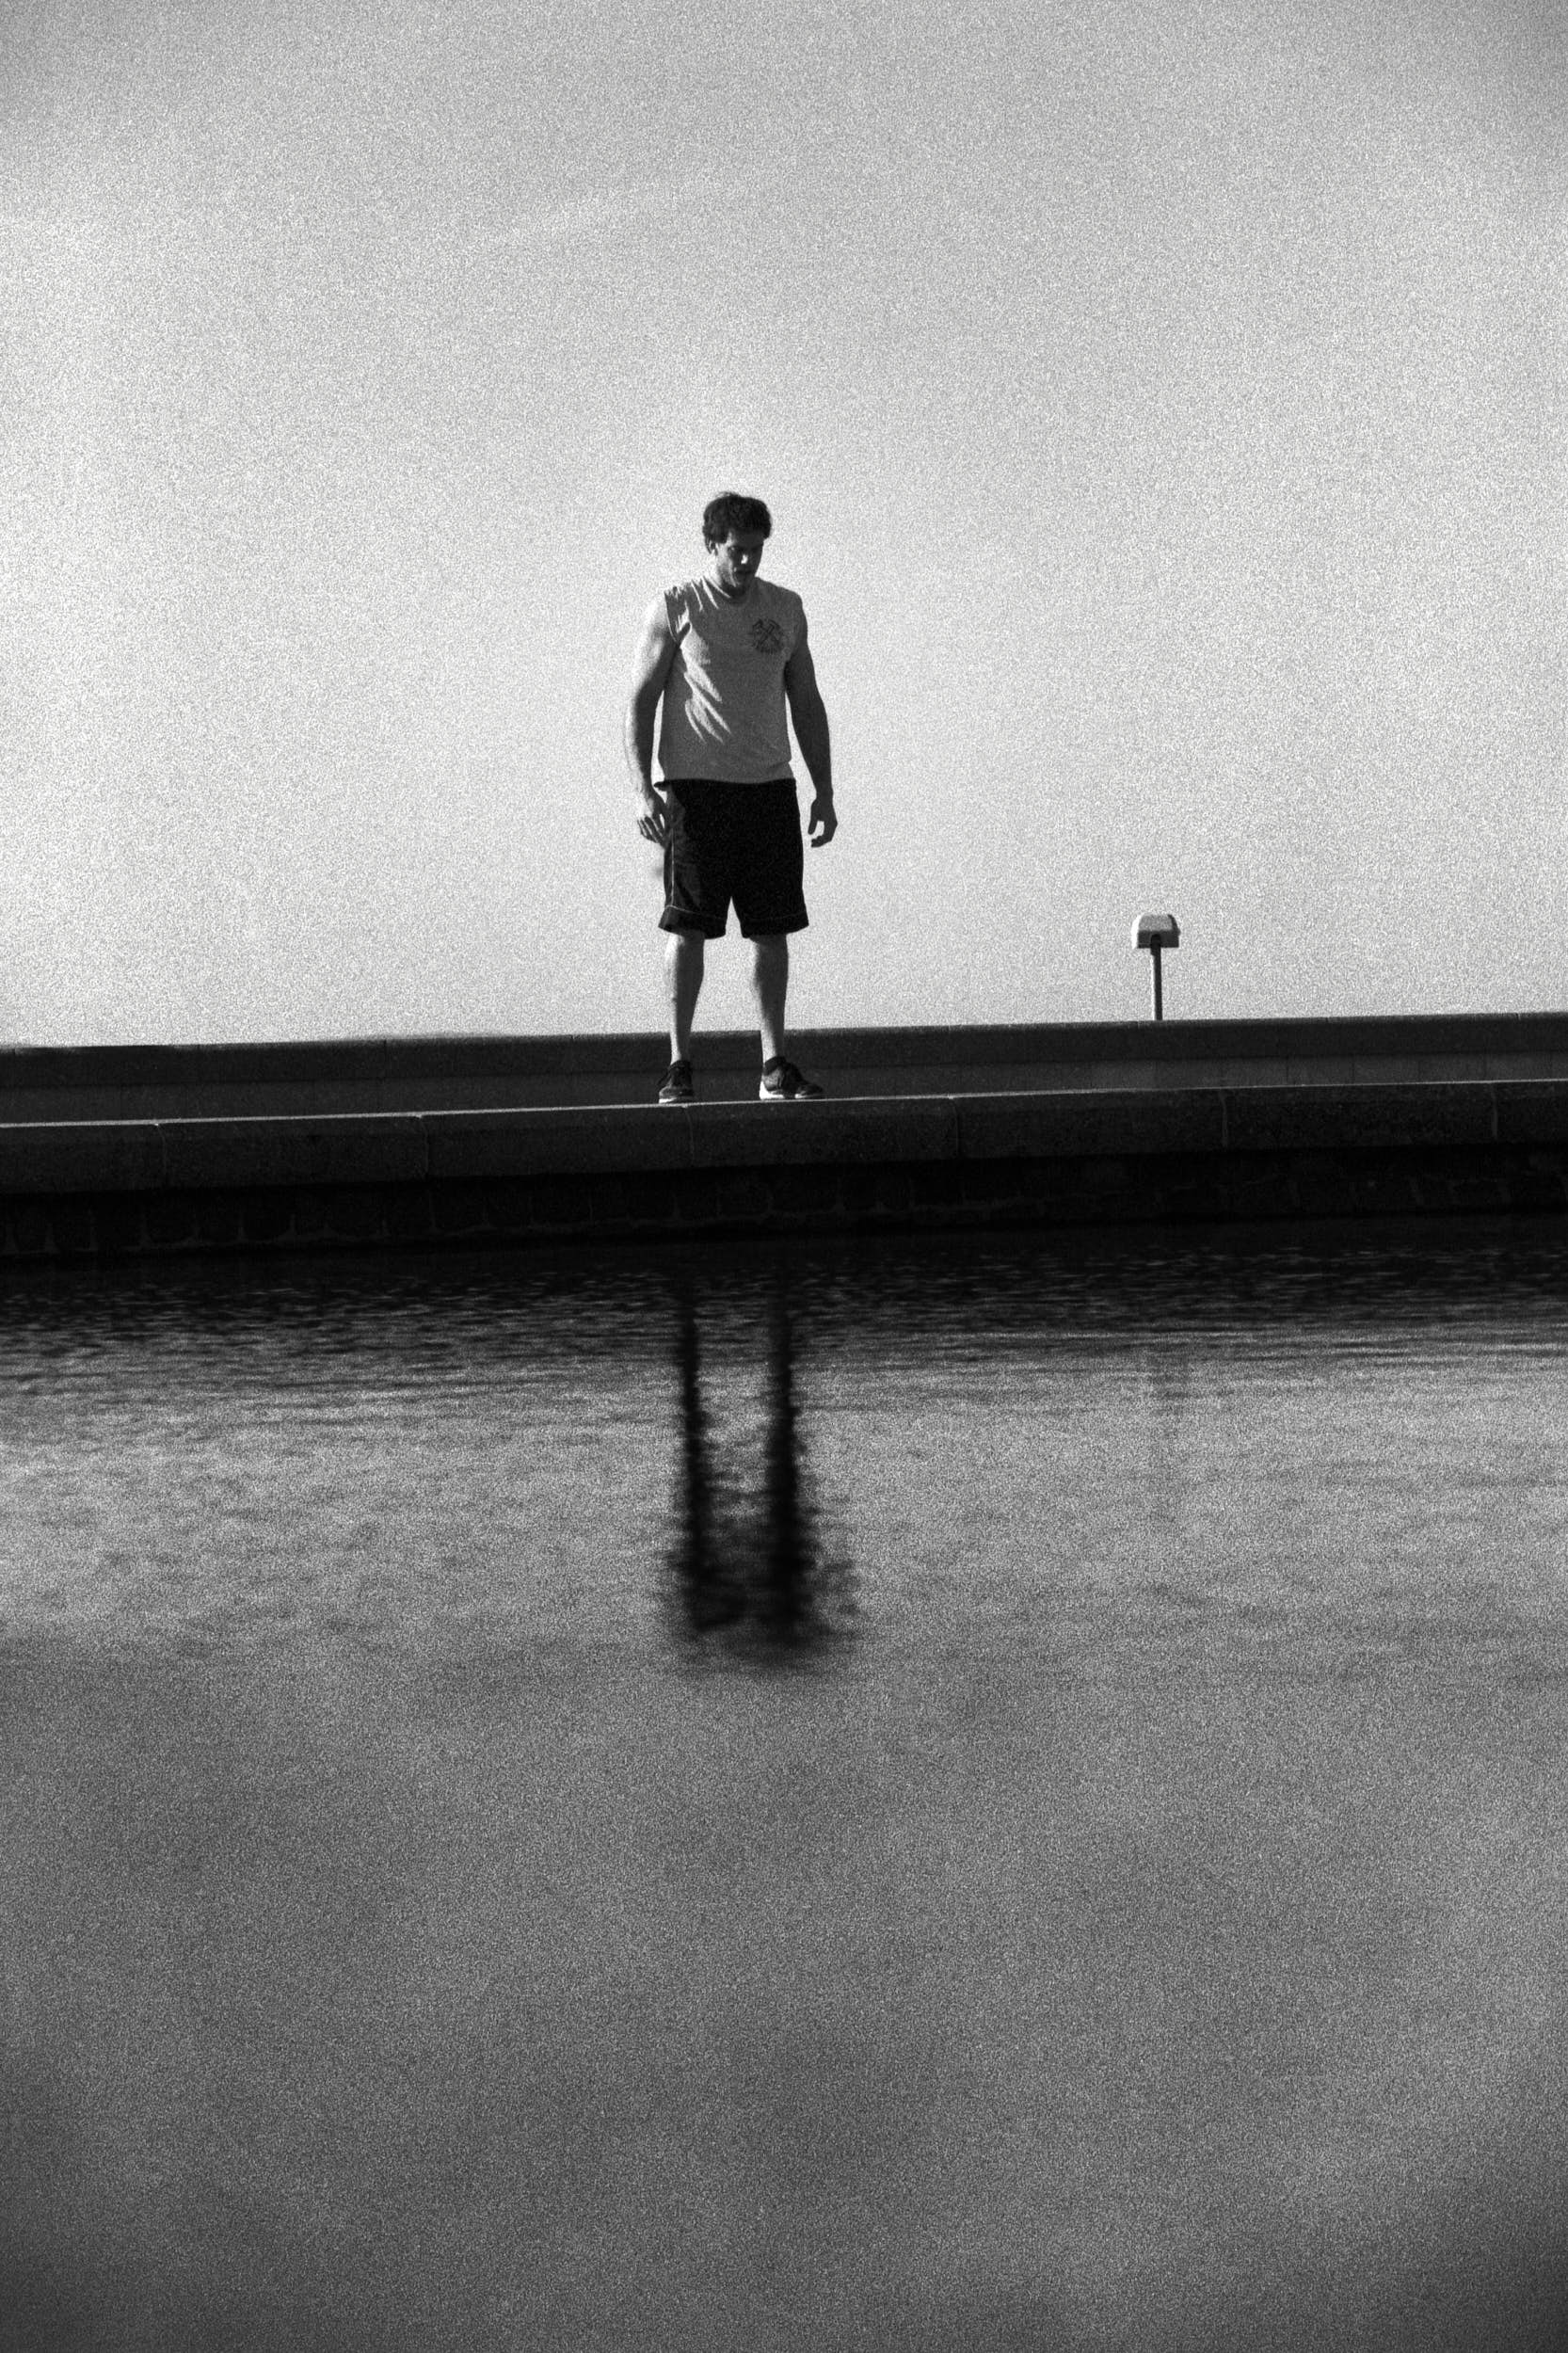 Fitness athlete standing on a curb. His body is reflected on a water surface beneath.